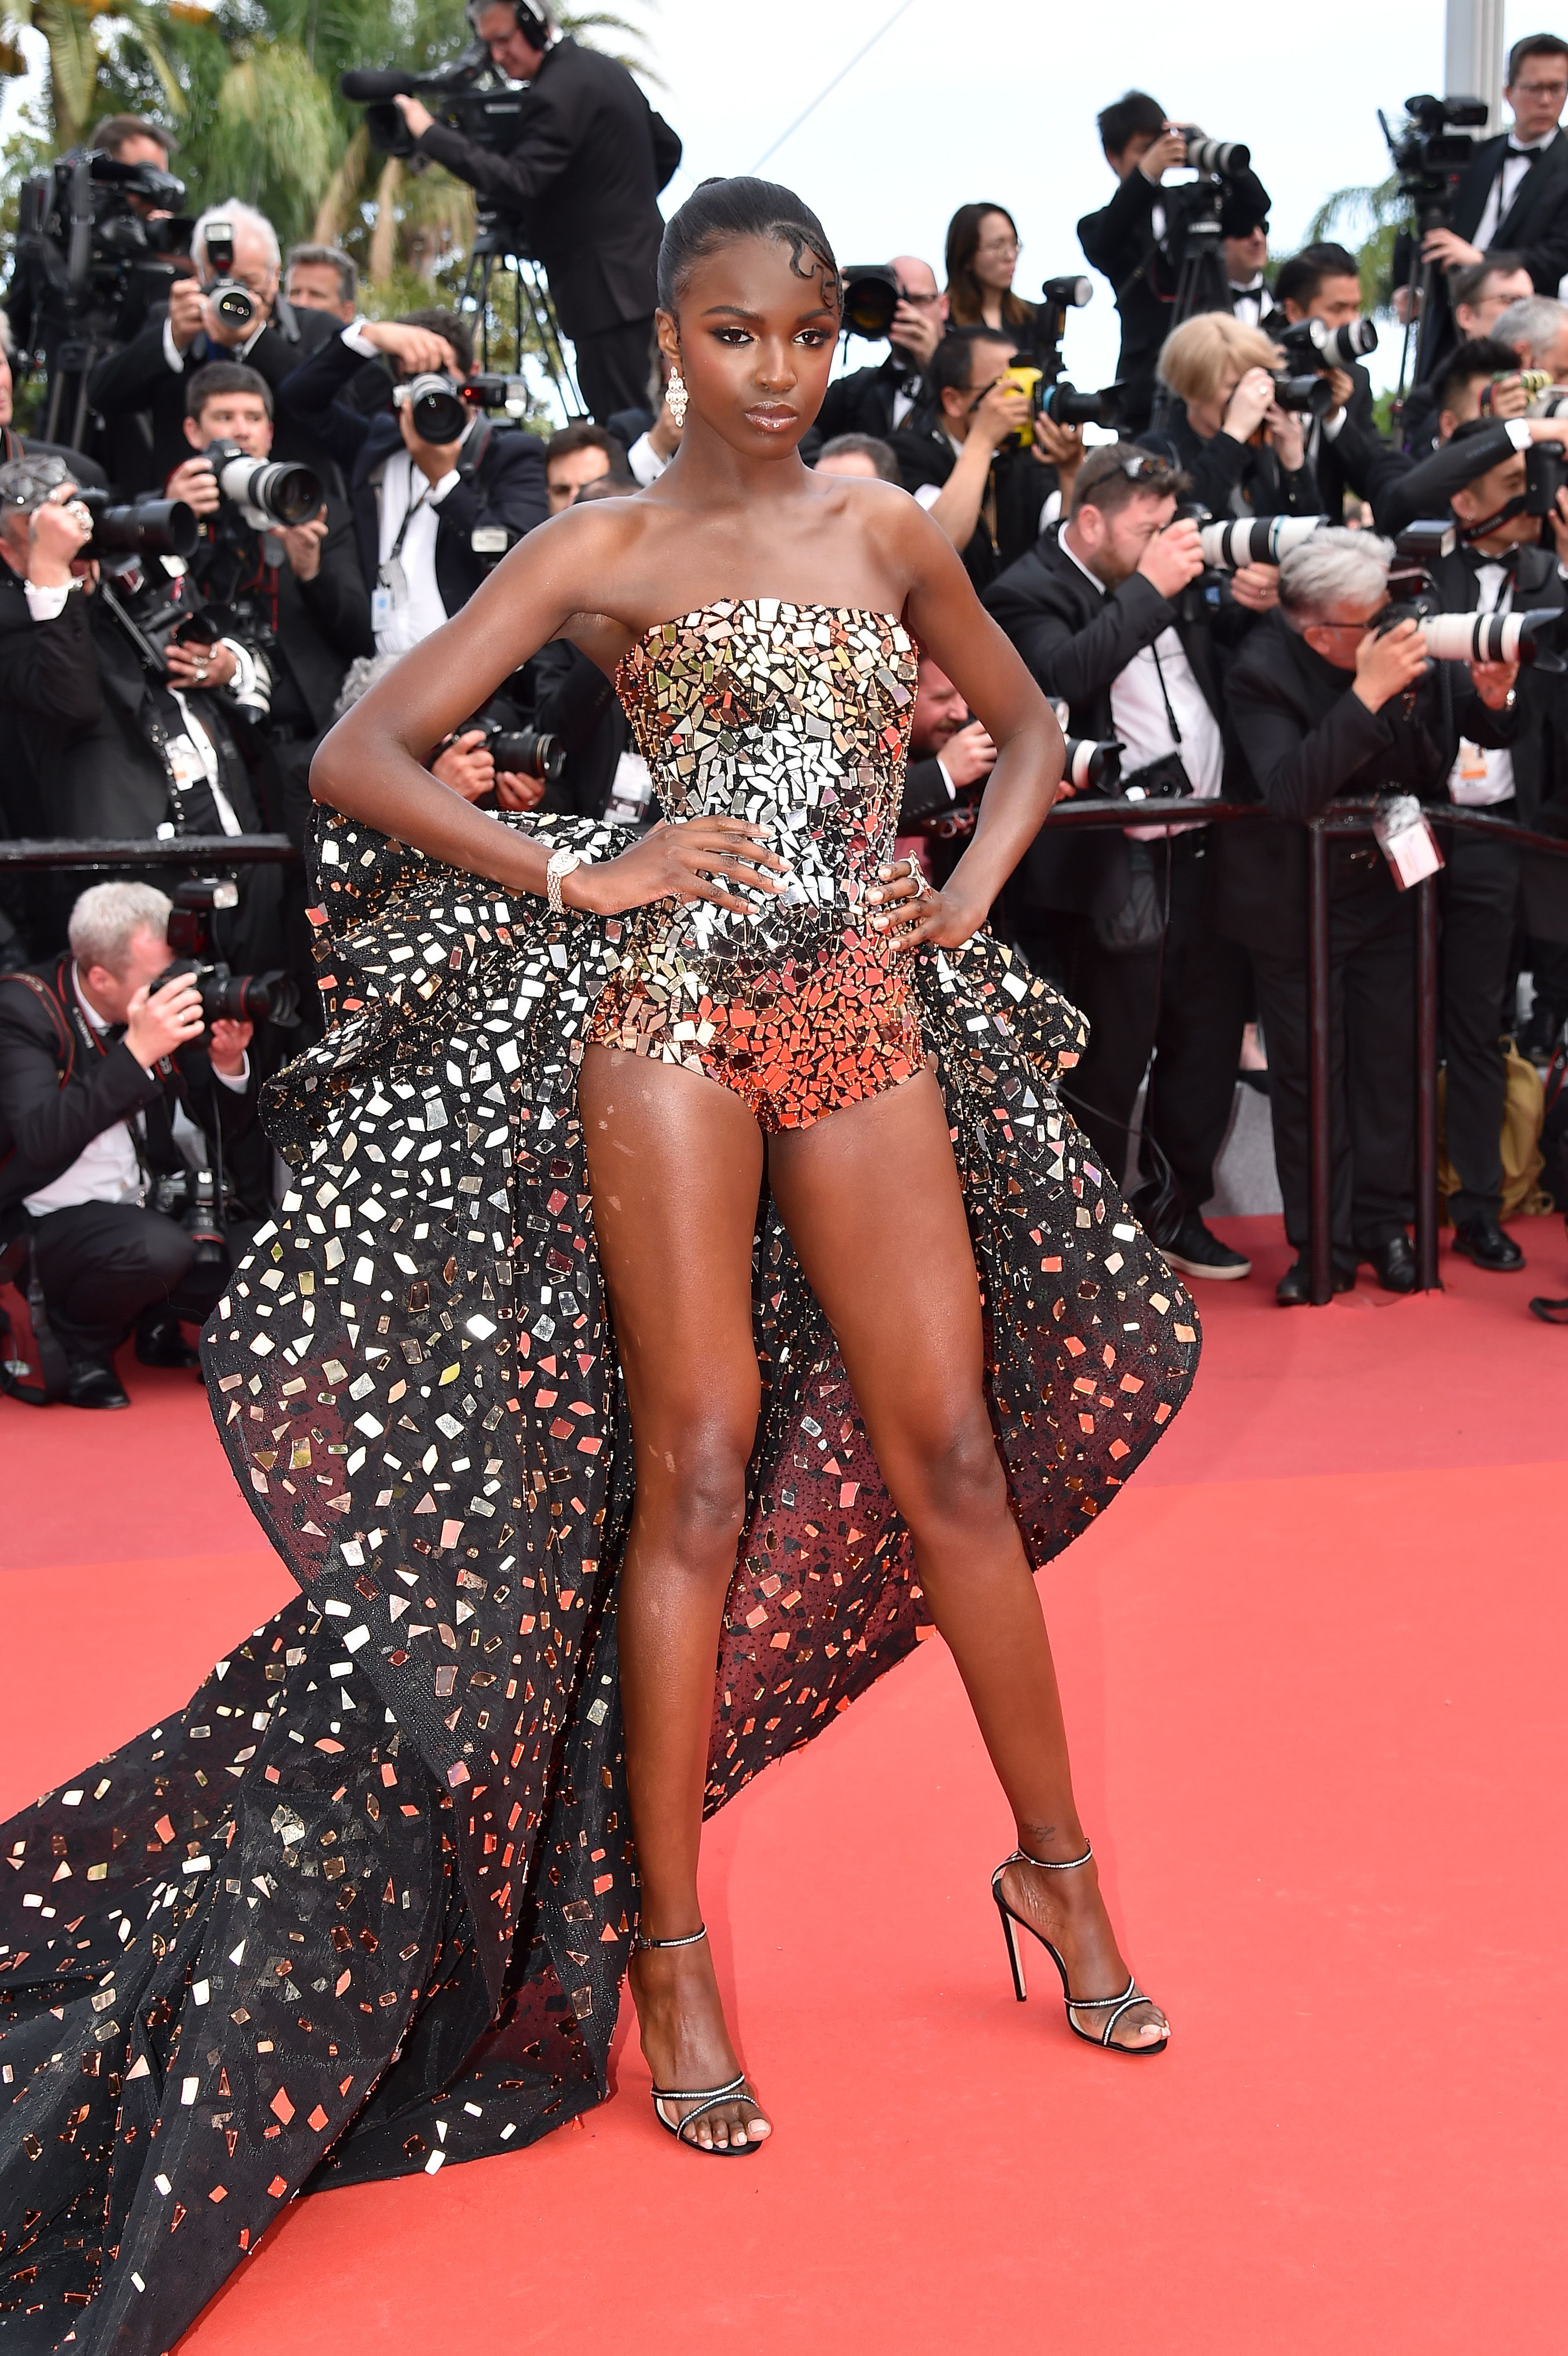 Cannes Film Festival 2019: The Best Dressed Celebrities From The Red Carpet